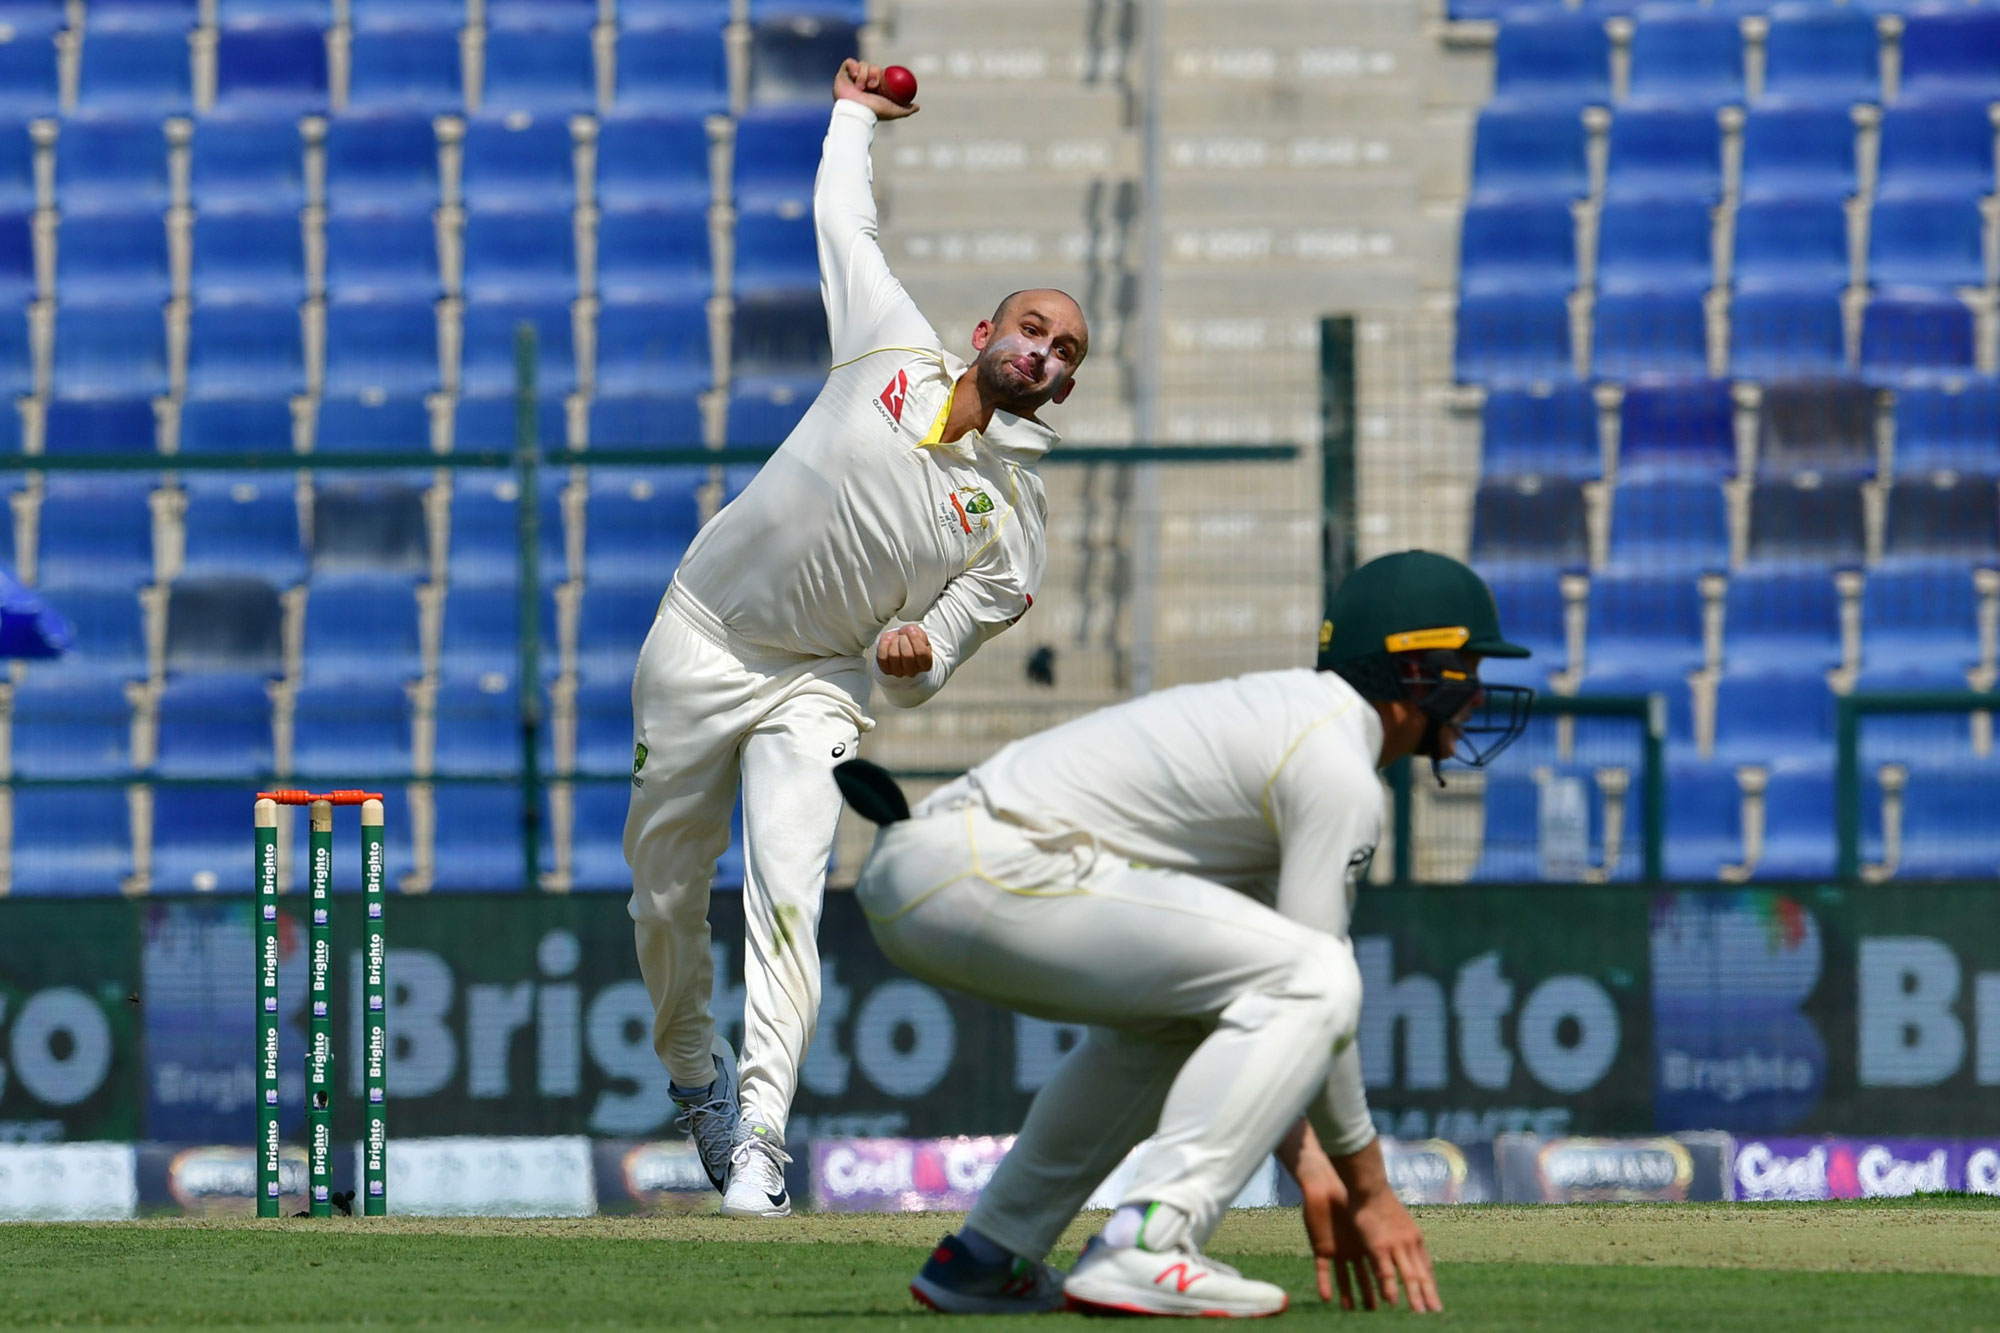 Australia cricketer Nathan Lyon bowls during day one of the second Test cricket match in the series between Australia and Pakistan at the Abu Dhabi Cricket Stadium in Abu Dhabi on October 16, 2018. (Photo by GIUSEPPE CACACE / AFP)